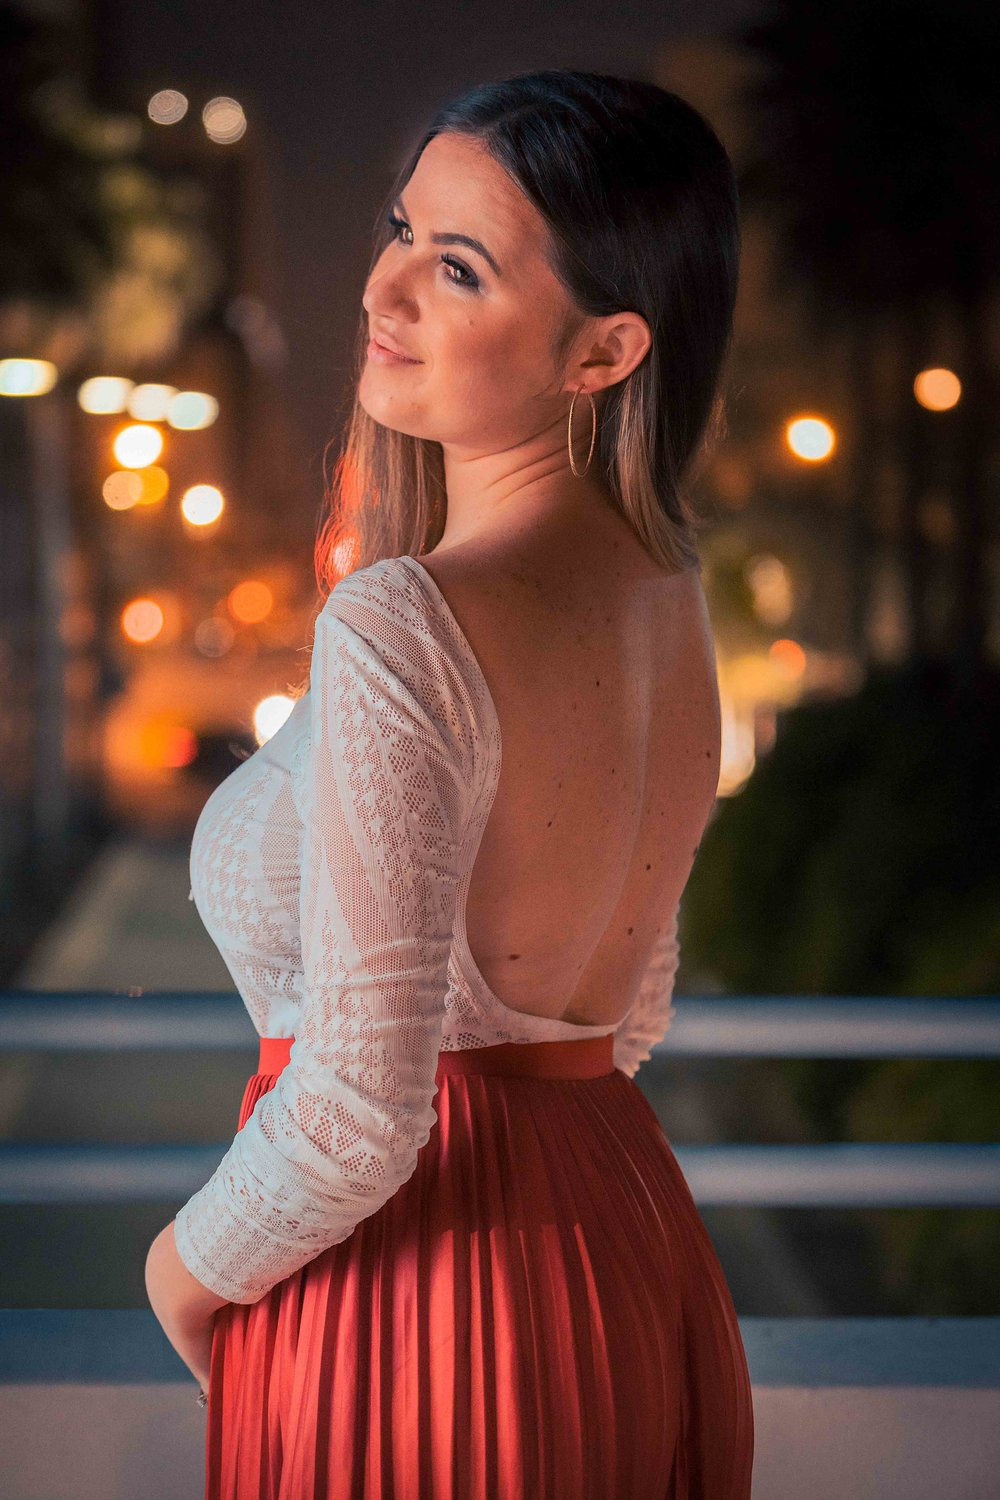 Portrait from Shooting in Downtown Tampa Florida with Fellow Tampa Photographers